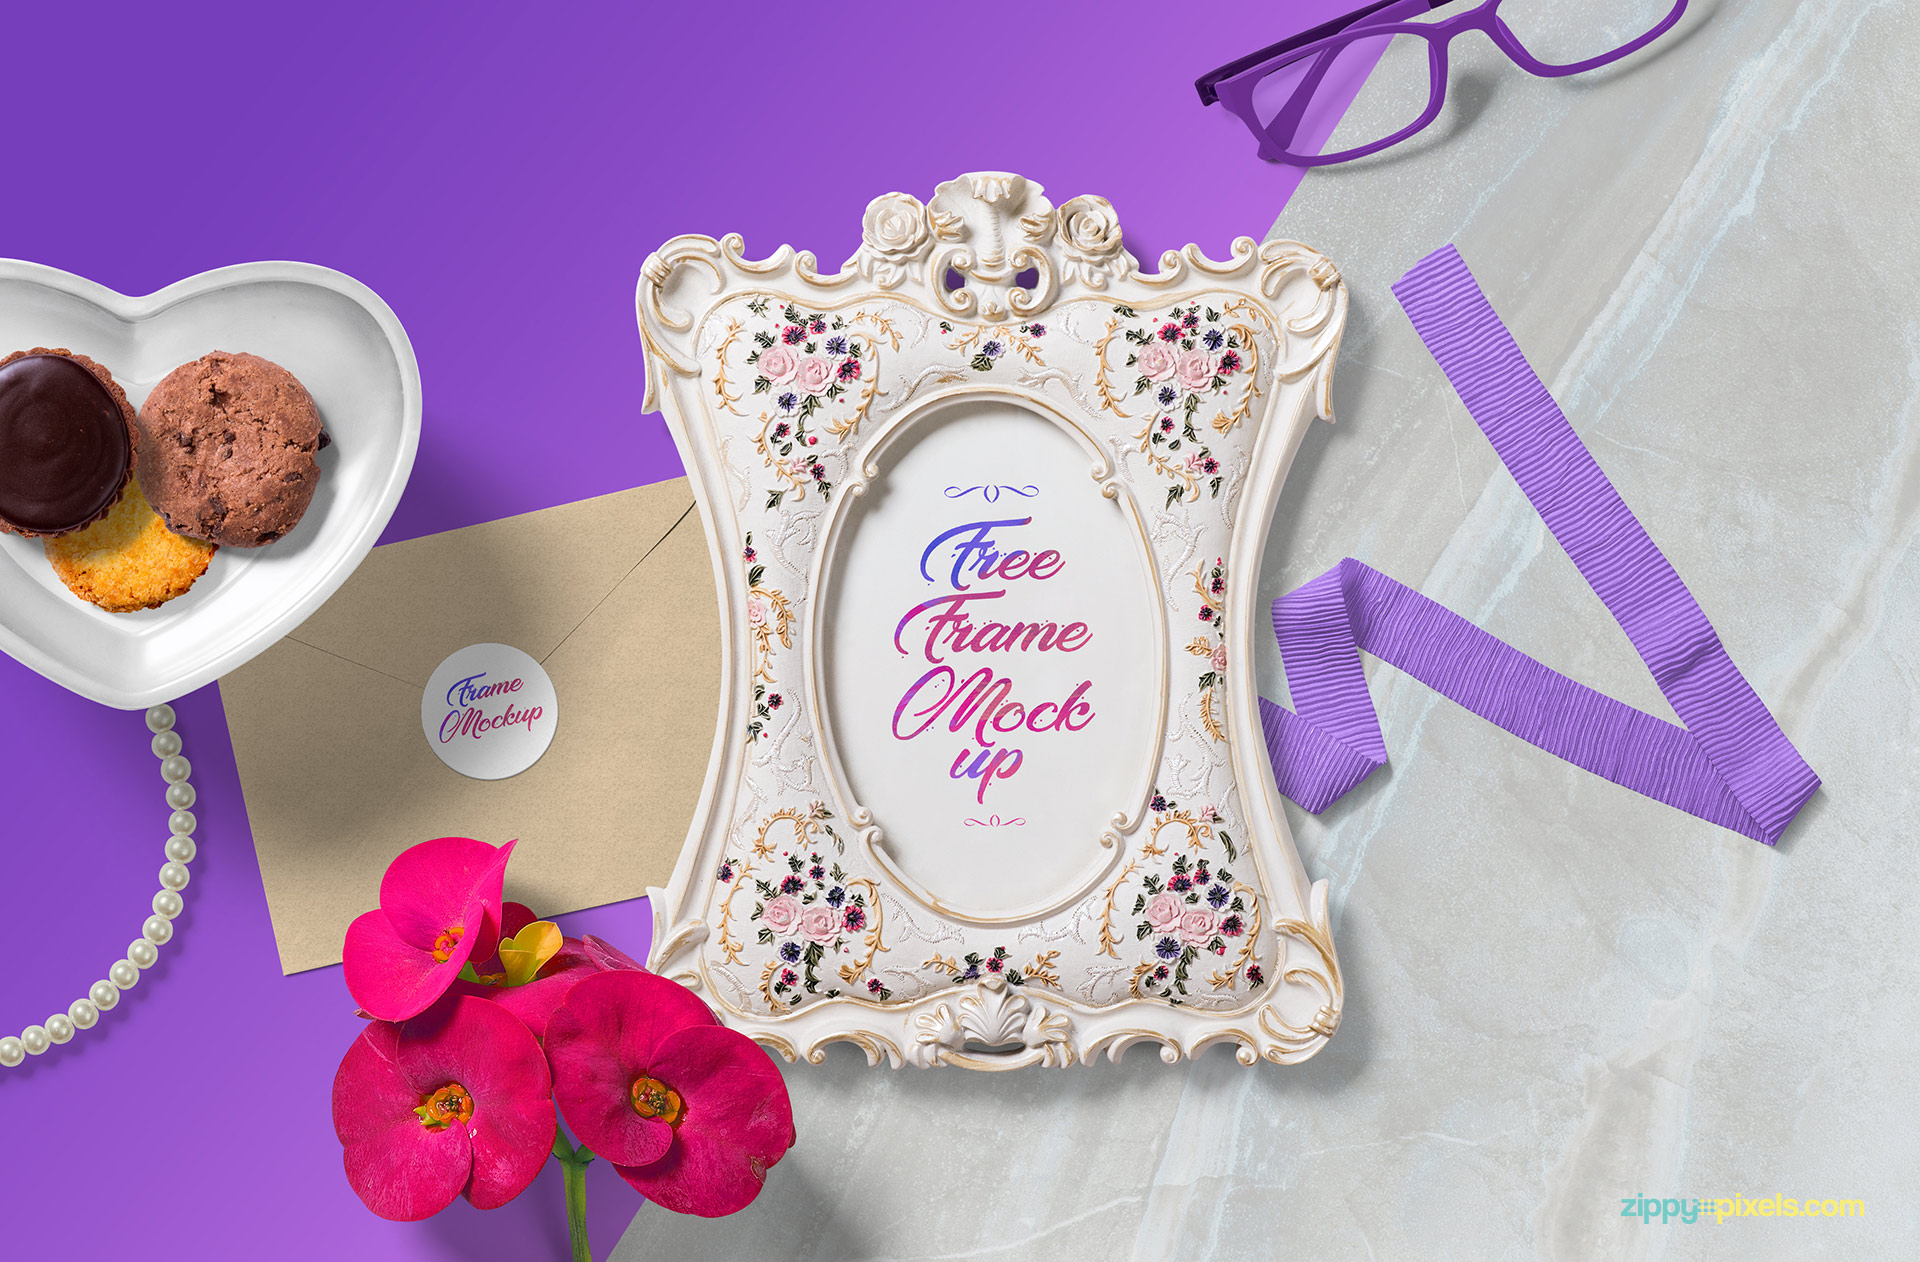 Gorgeously designed free picture frame mockup scene.